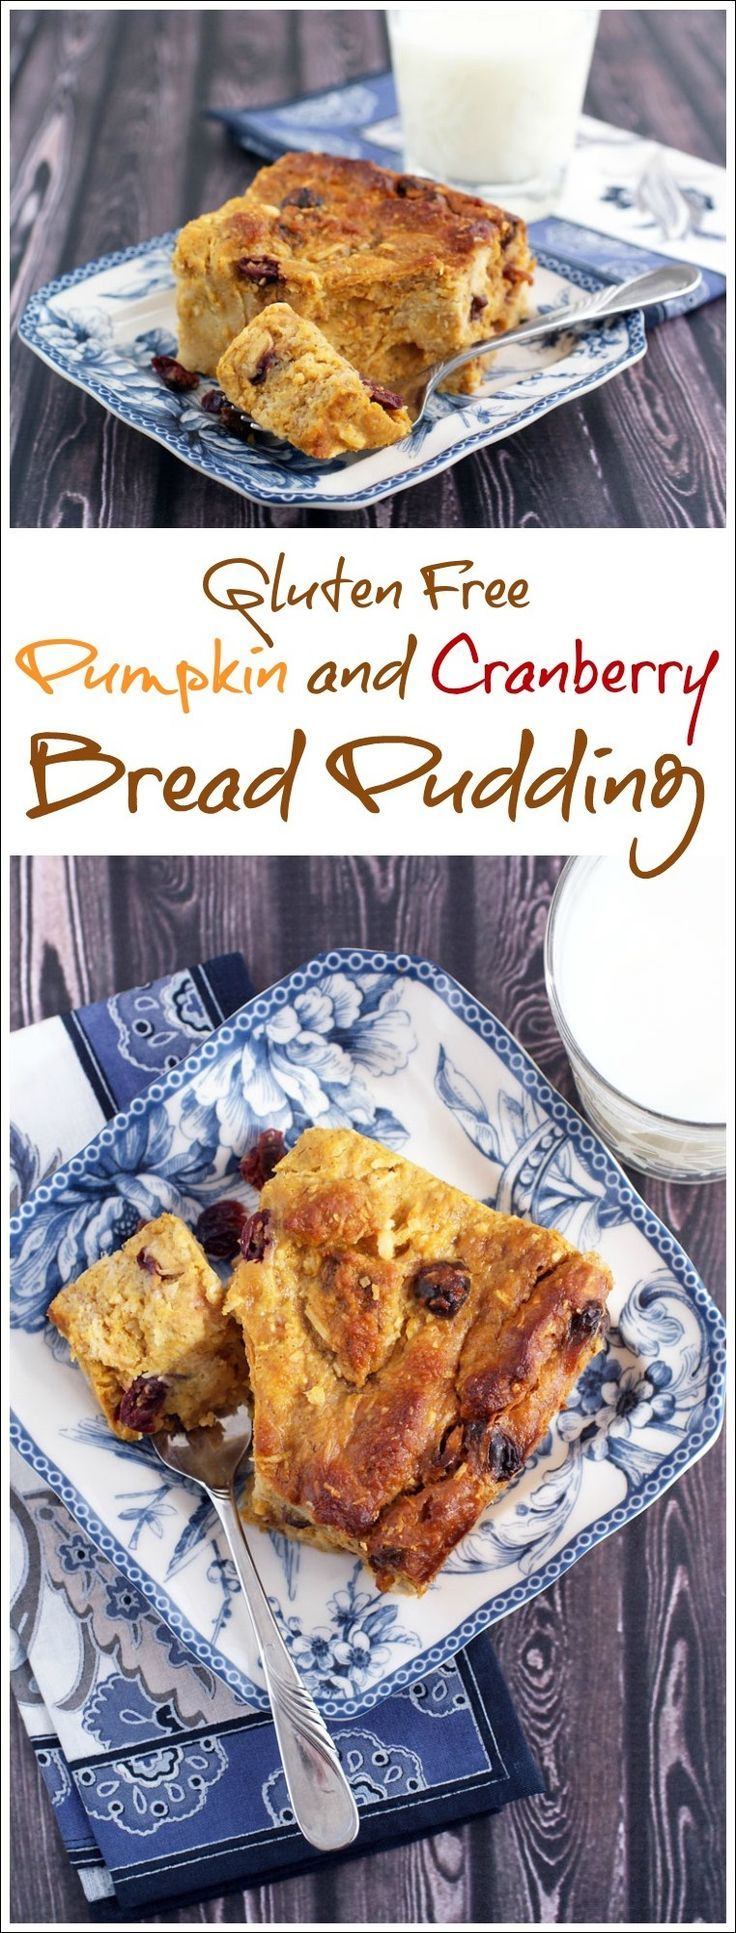 This pumpkin bread purdding is terrific for fall brunch parties or Thanksgiving breakfast get togethers. Get the recipe for Gluten Free Pumpkin and Cranberry Bread Pudding at This Mama Cooks! On a Diet